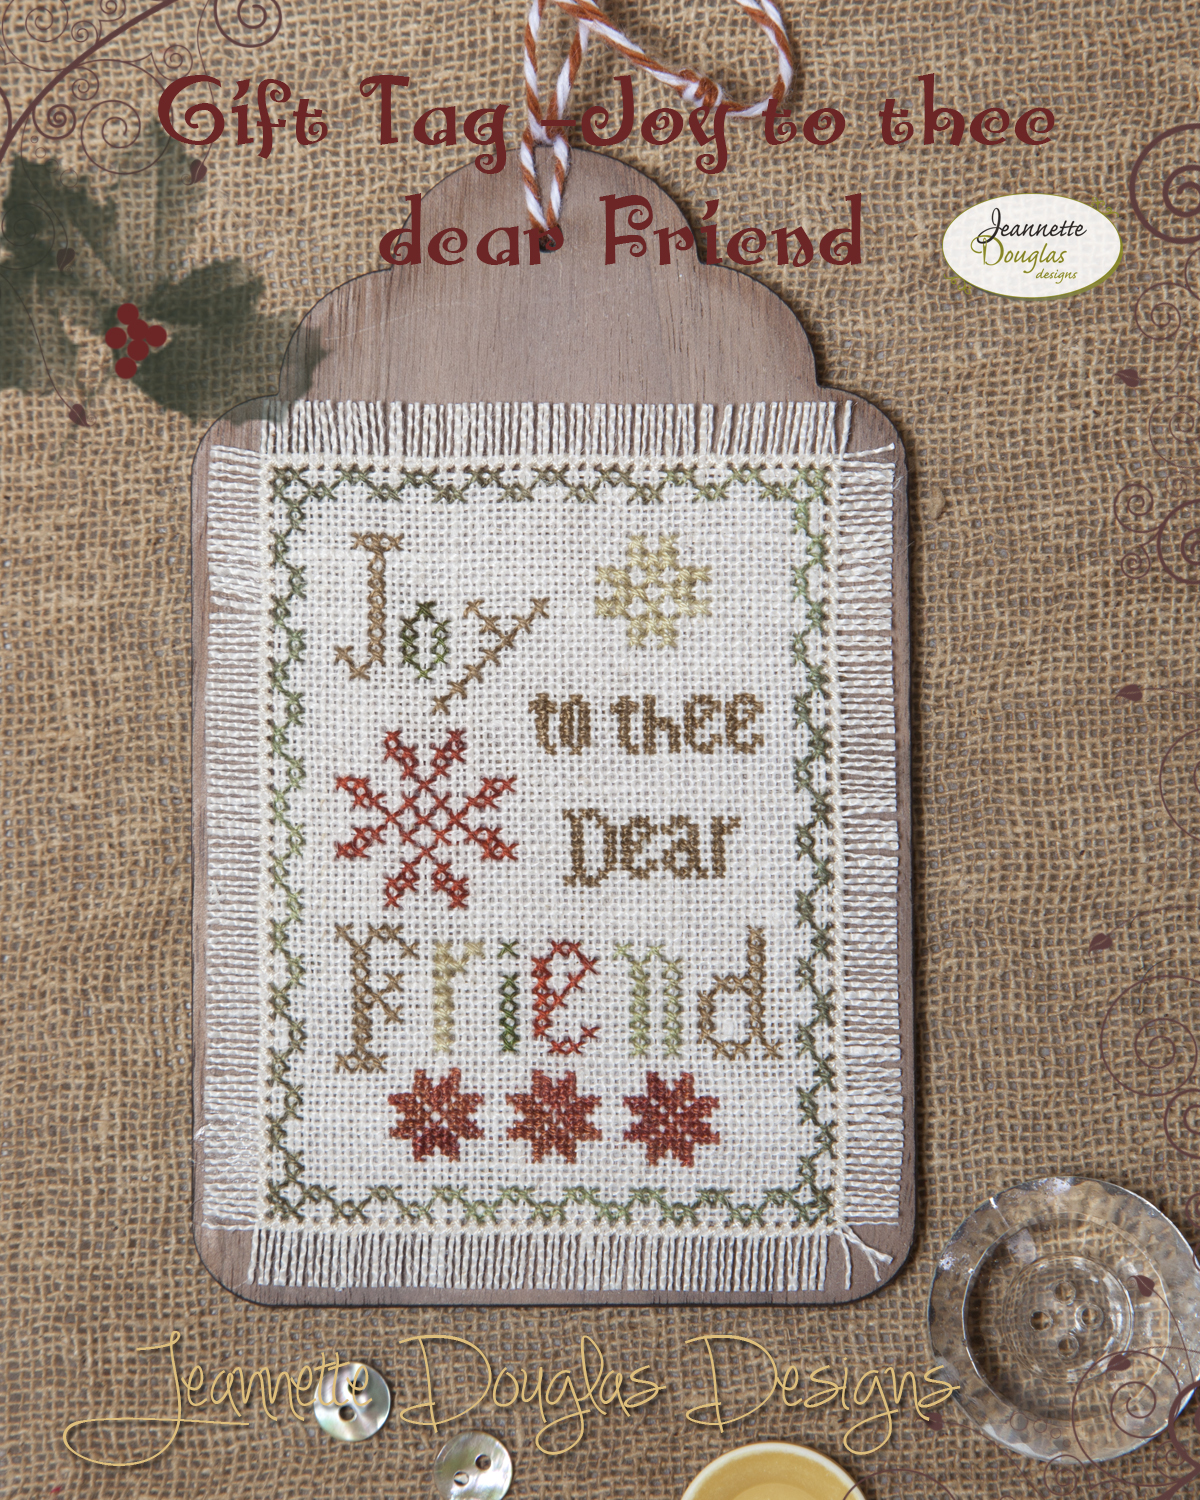 Gift Tag - Joy to thee dear Friend